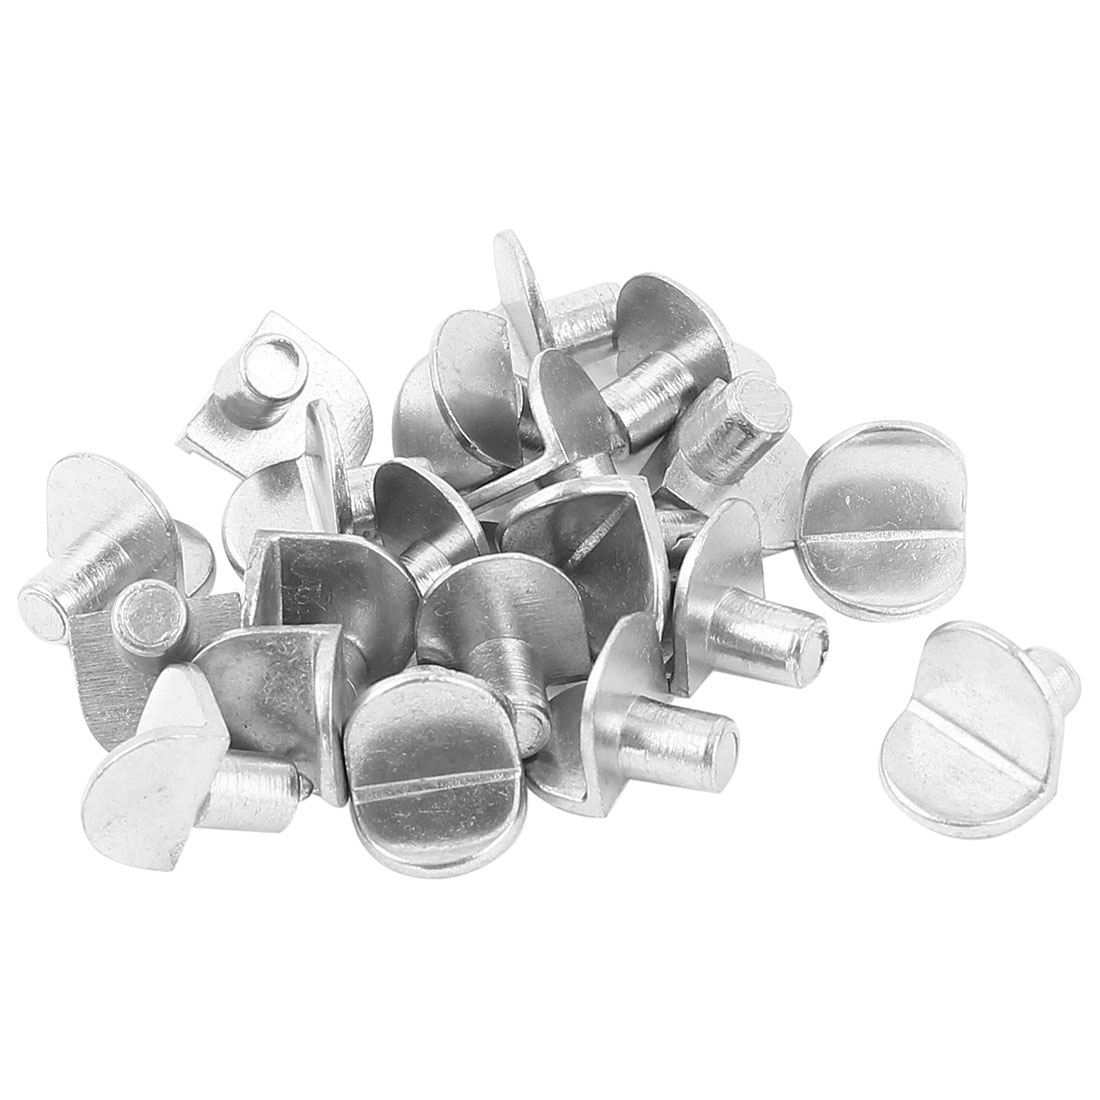 Furniture Shelf Holder Support Metal Pin Supporter Silver Tone 20 Pcs